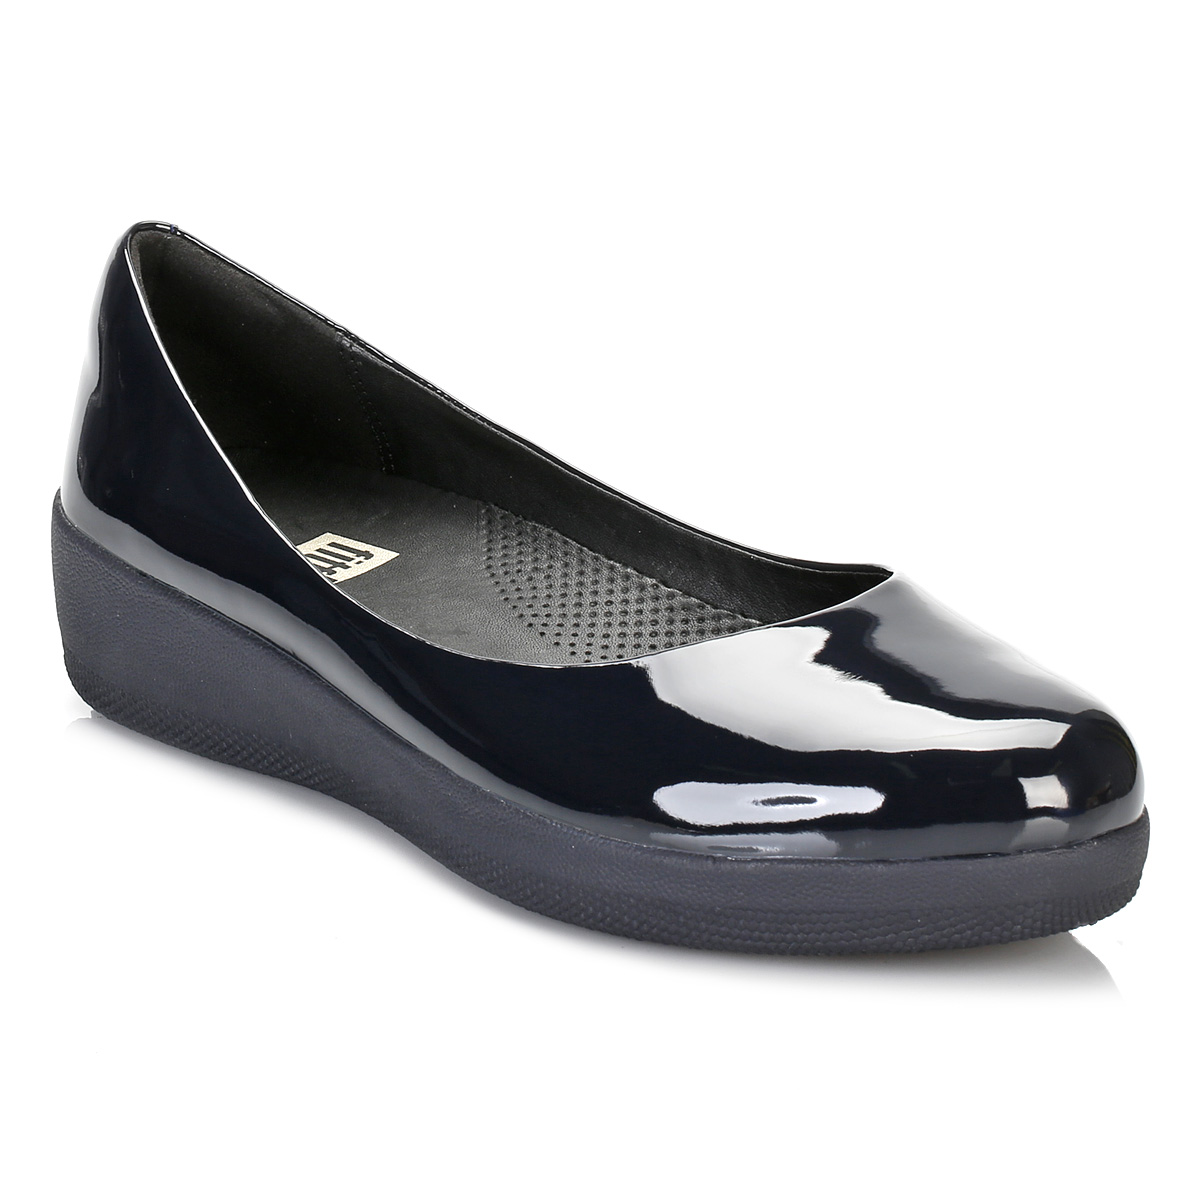 Free shipping BOTH ways on Flats, Navy, Women, from our vast selection of styles. Fast delivery, and 24/7/ real-person service with a smile. Click or call